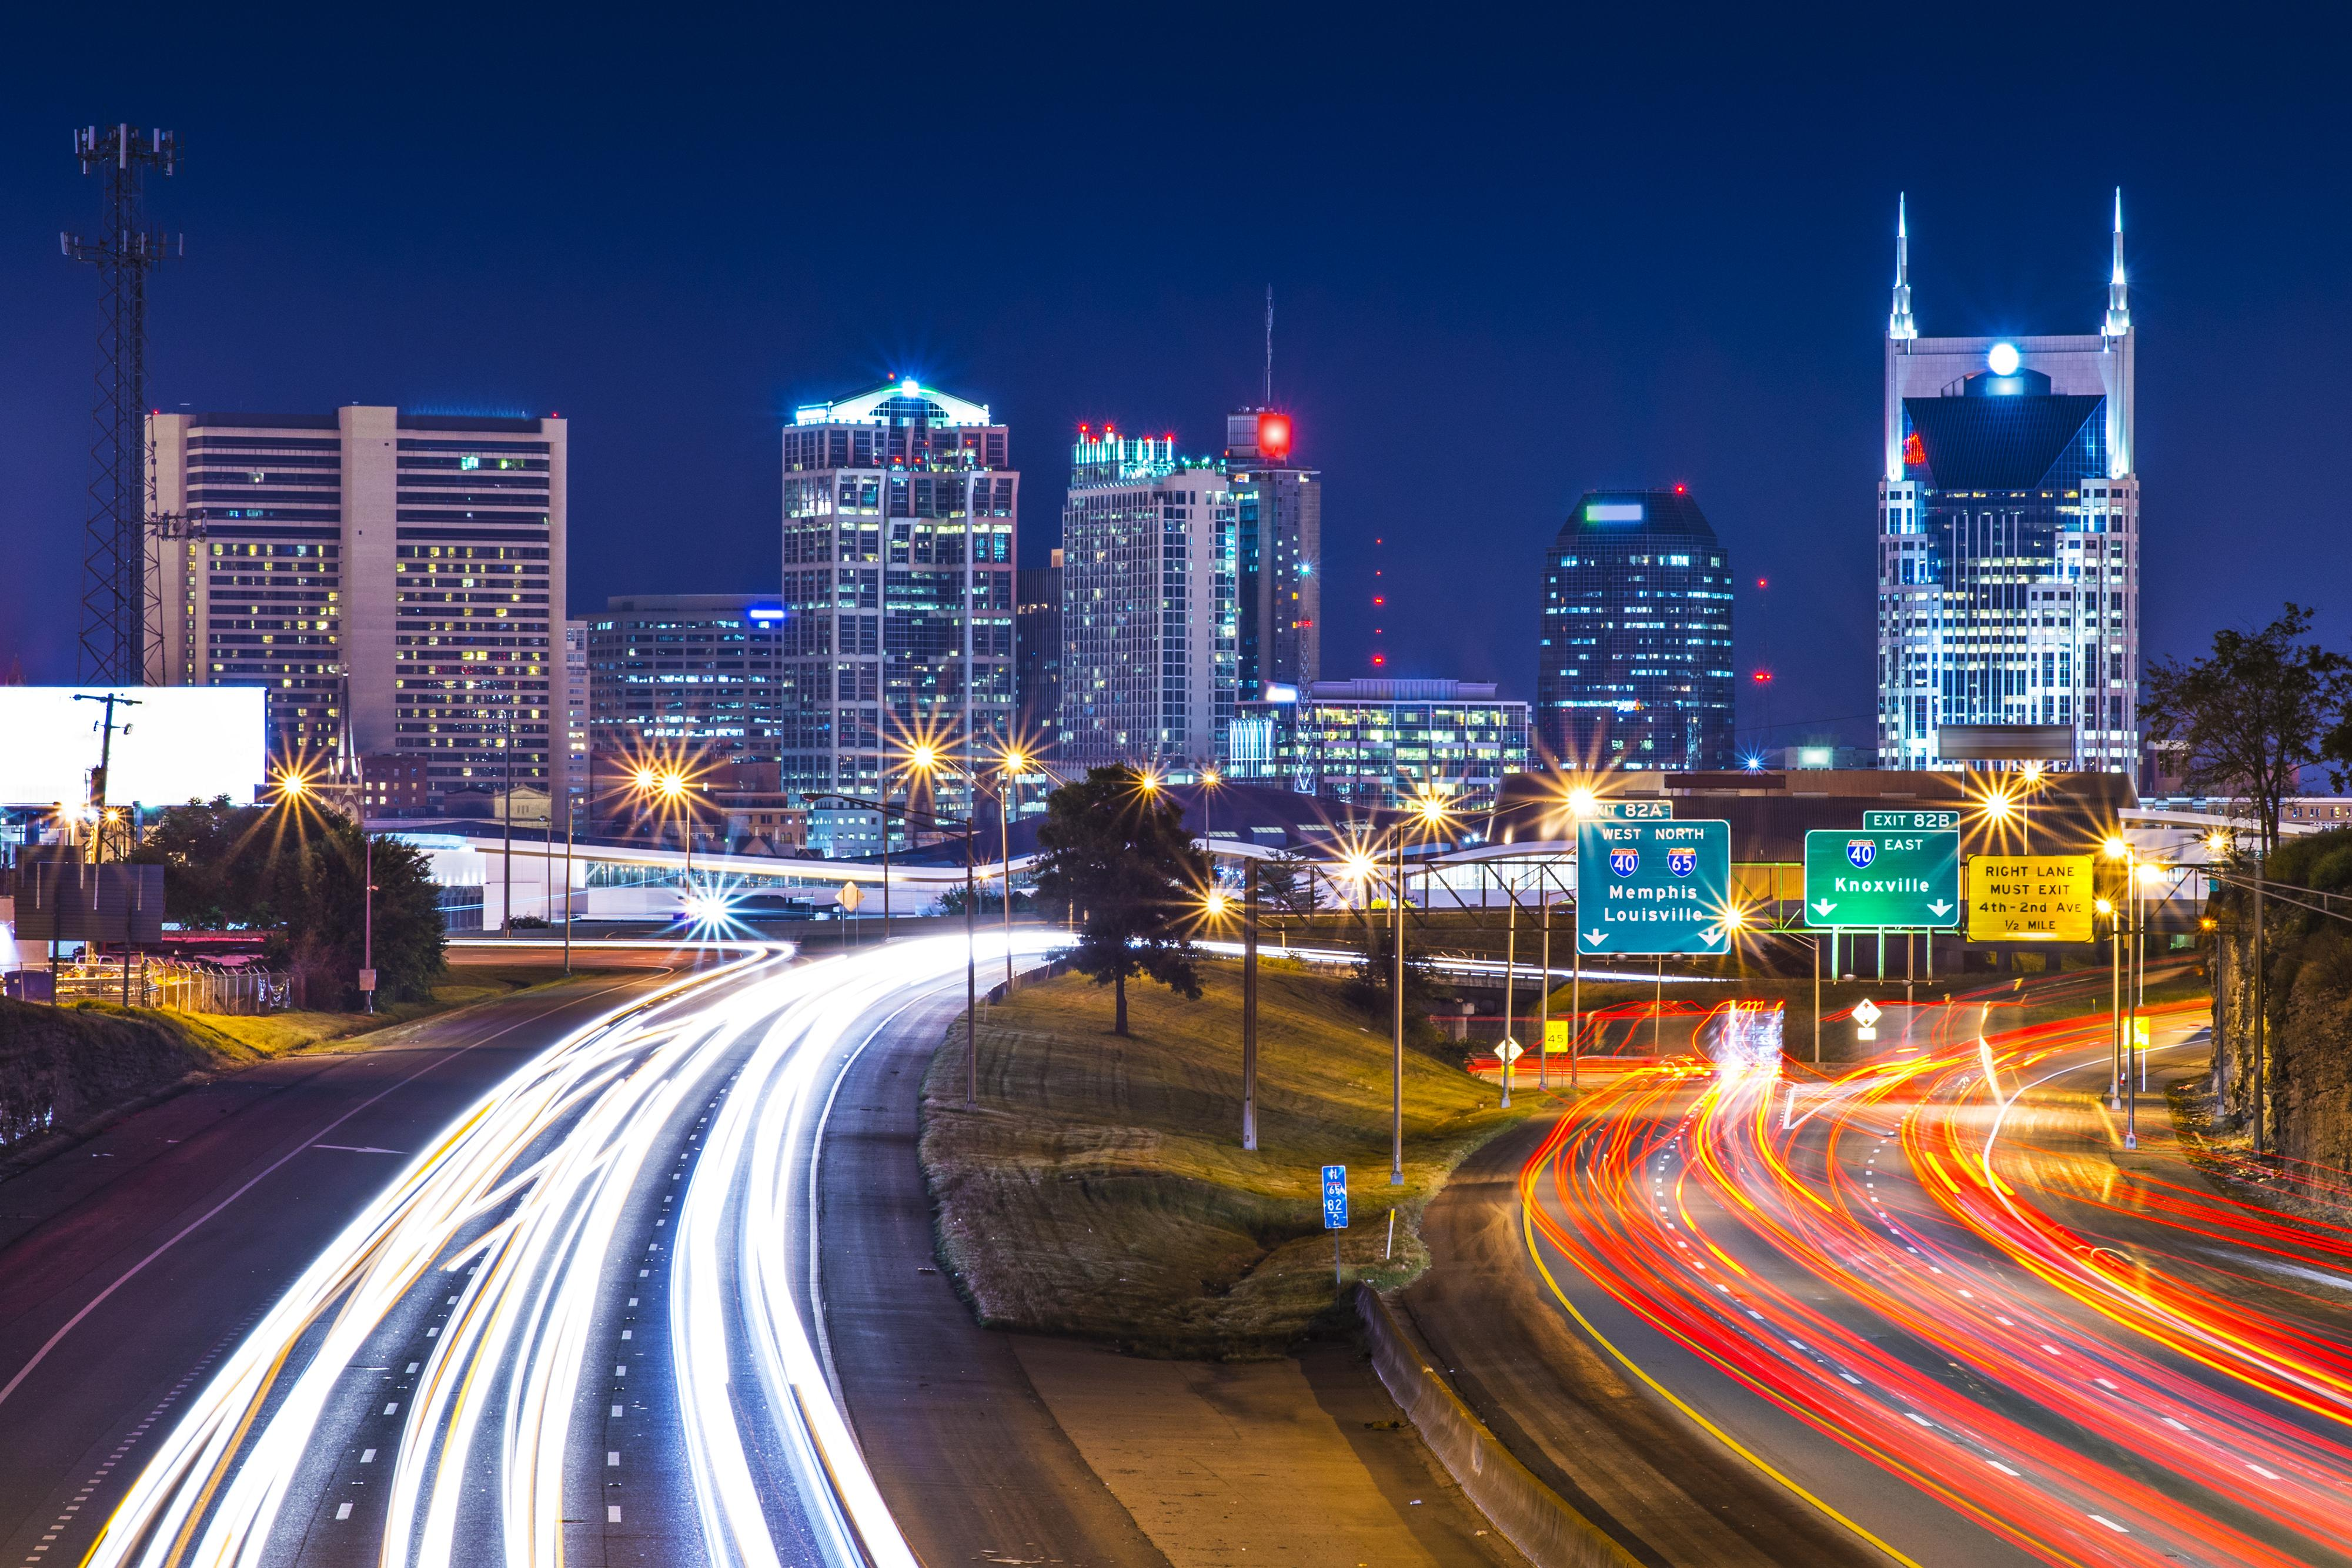 The excitement and attractions of downtown Nashville is a short drive away!